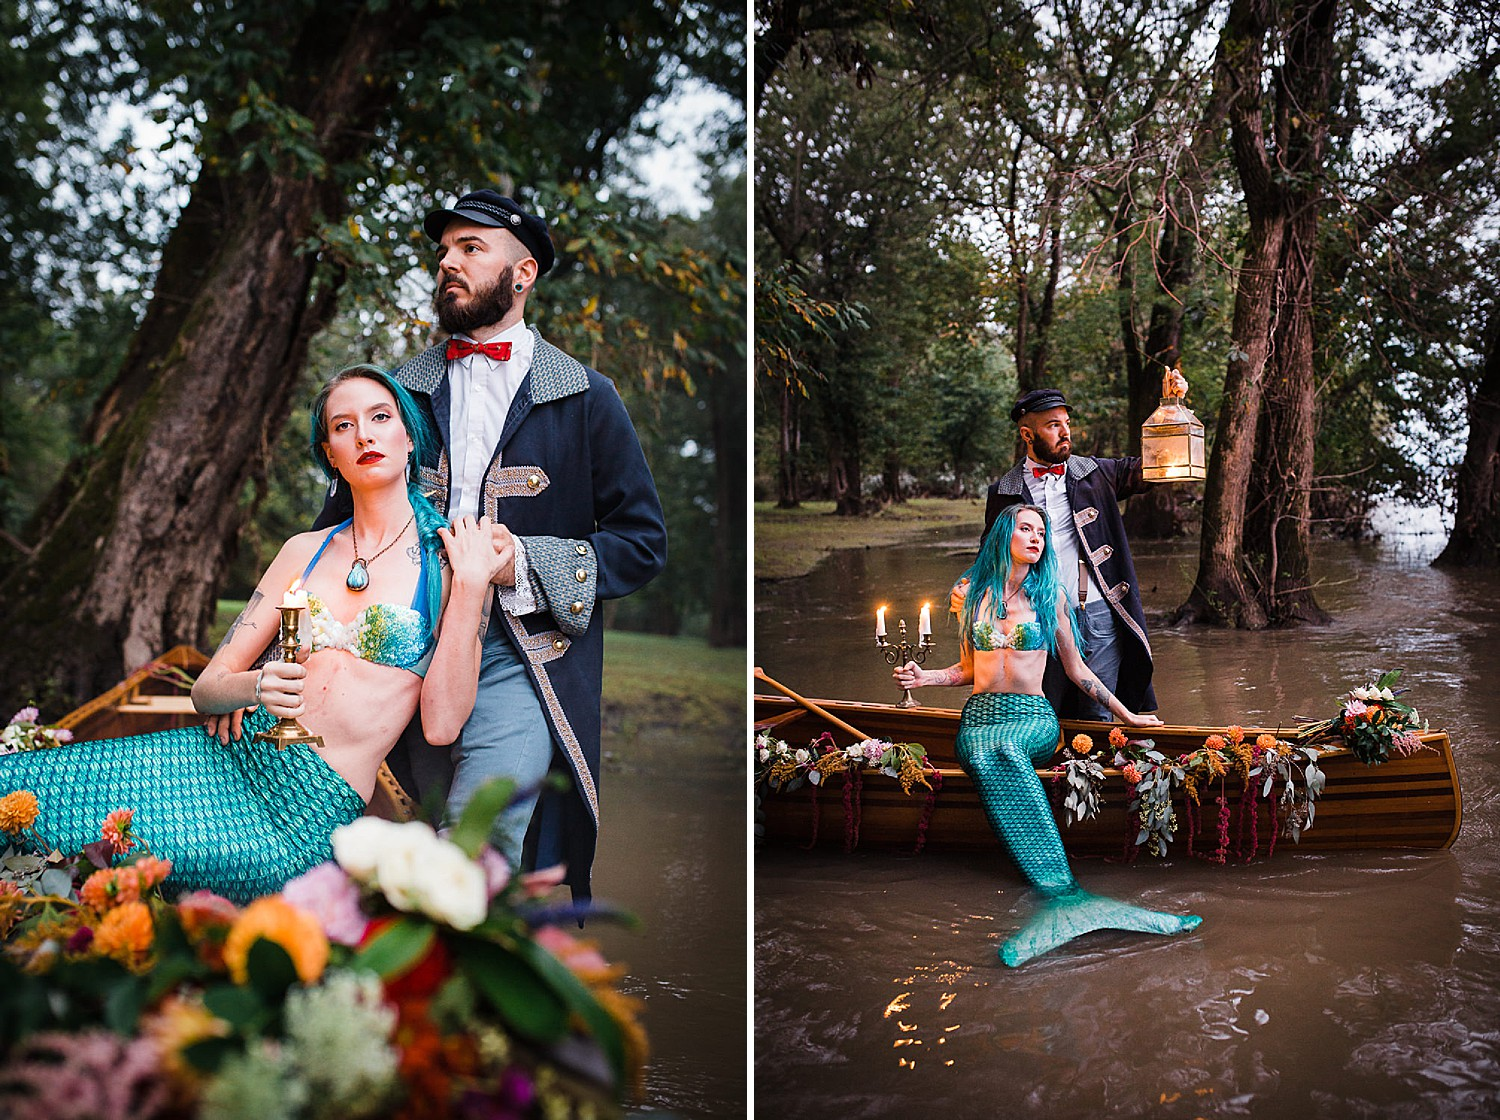 mermaid_fantasy_photography_styled_shoot22.jpg